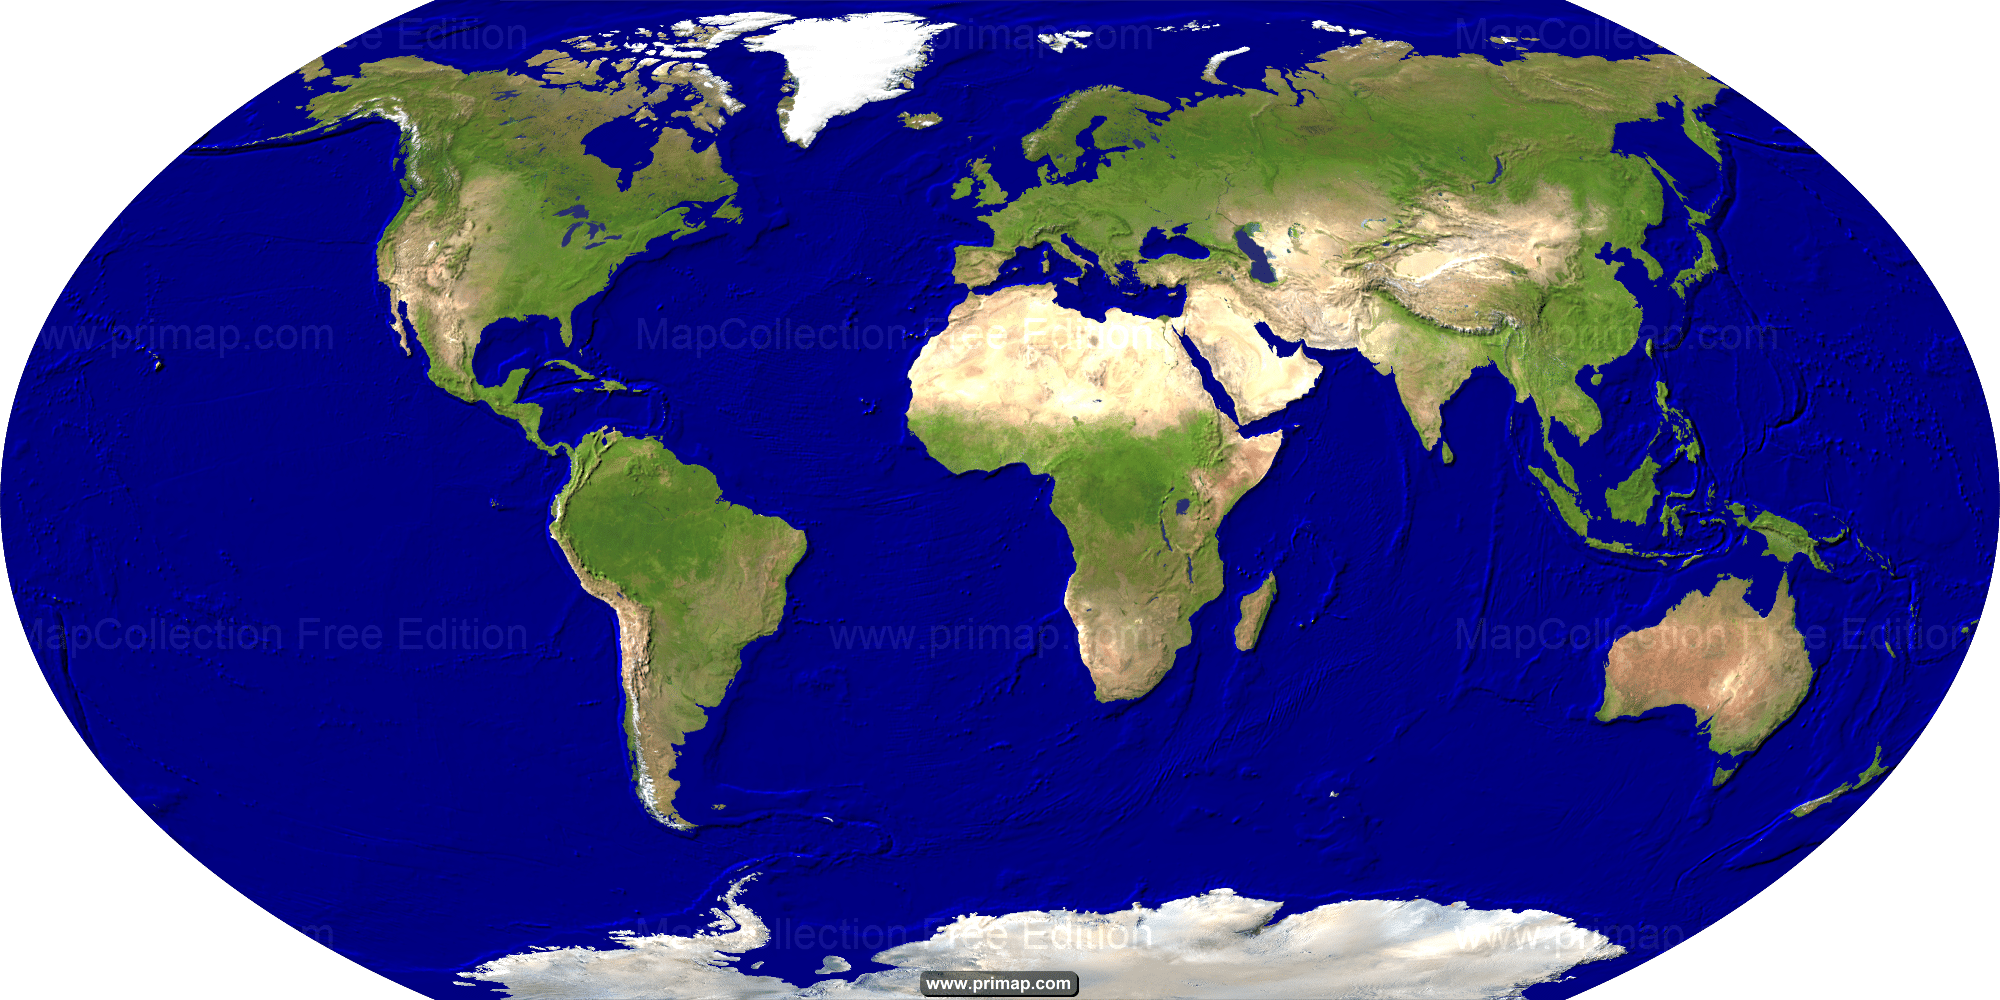 Satellite World Map Hd Images Free HD Images - World map satellite picture